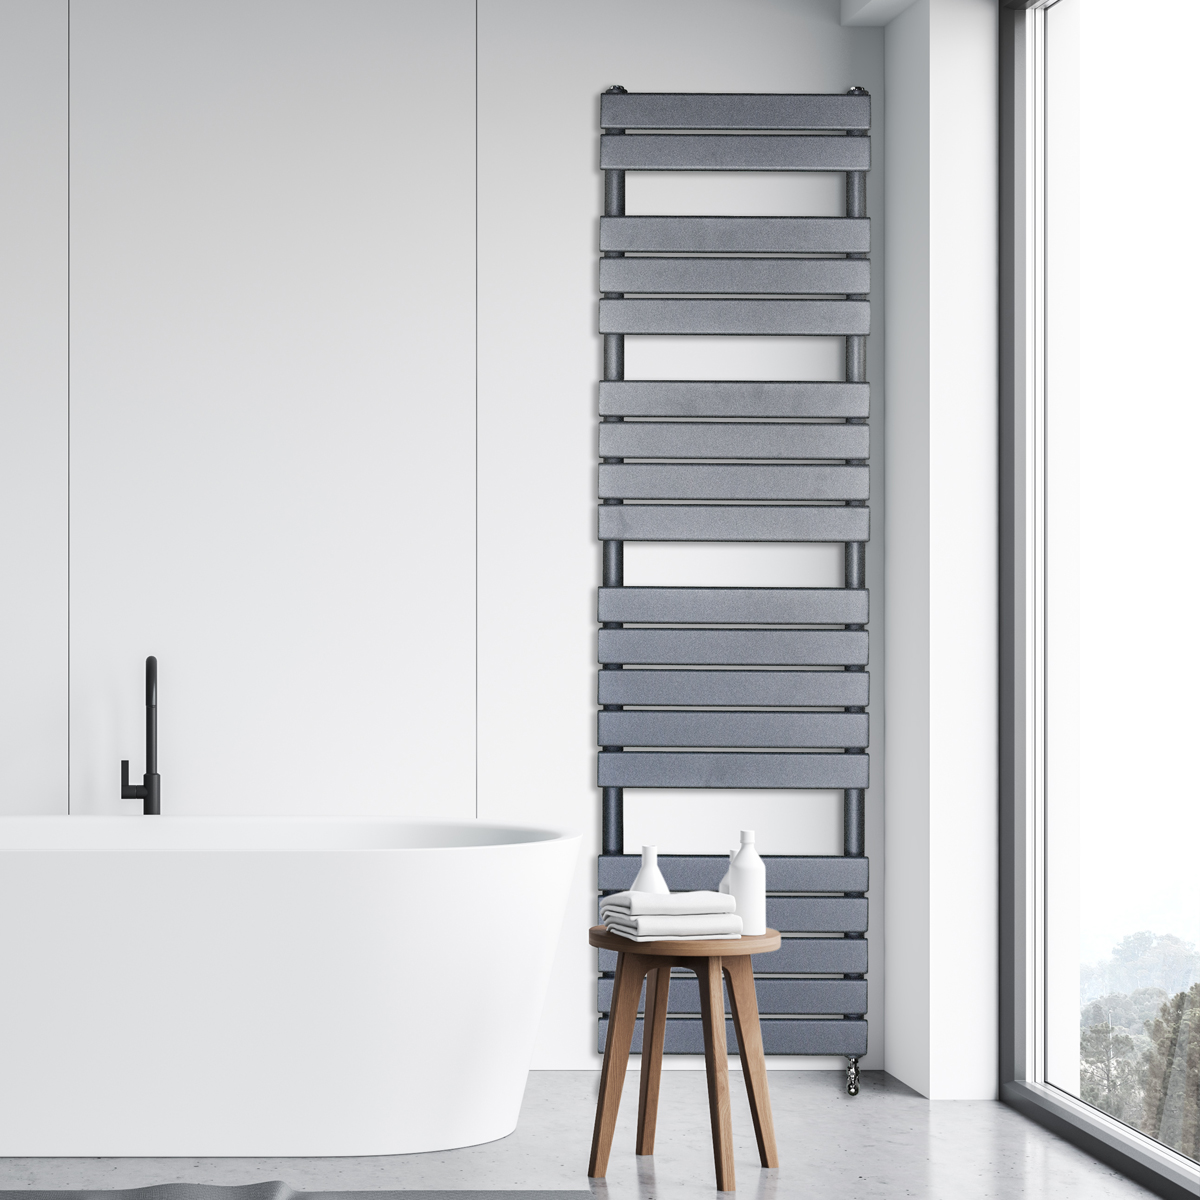 Adige Designer Towel Radiator Grey Large RAD-AF-FR01006G